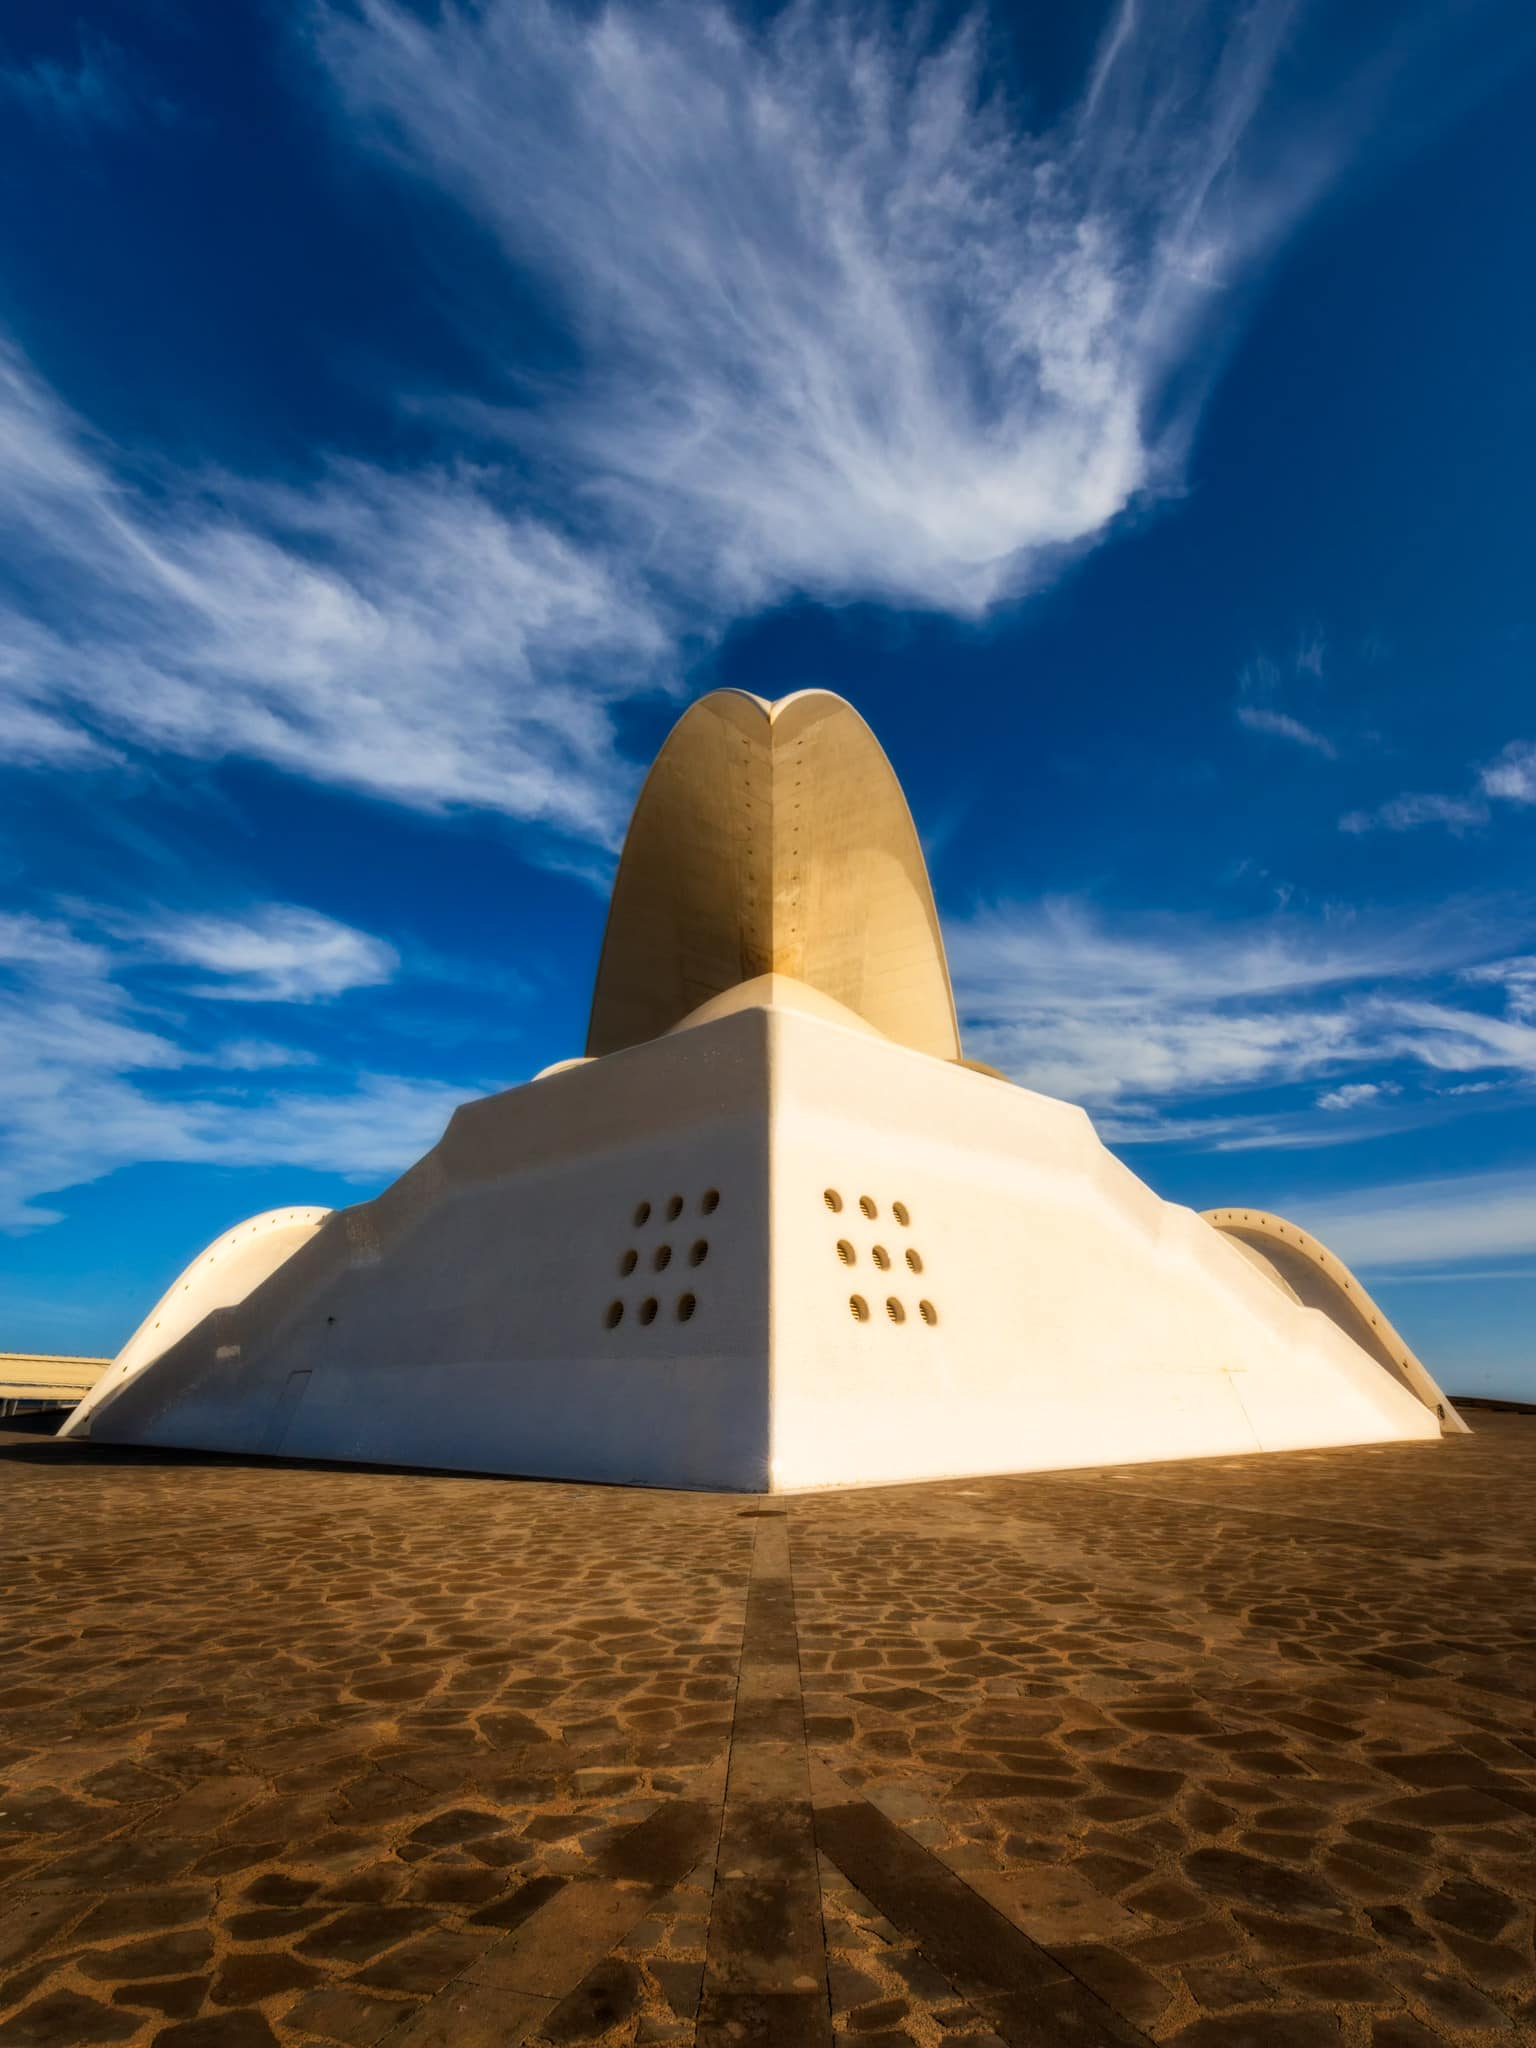 Auditorio de Tenerife | Santa Cruz, Spain